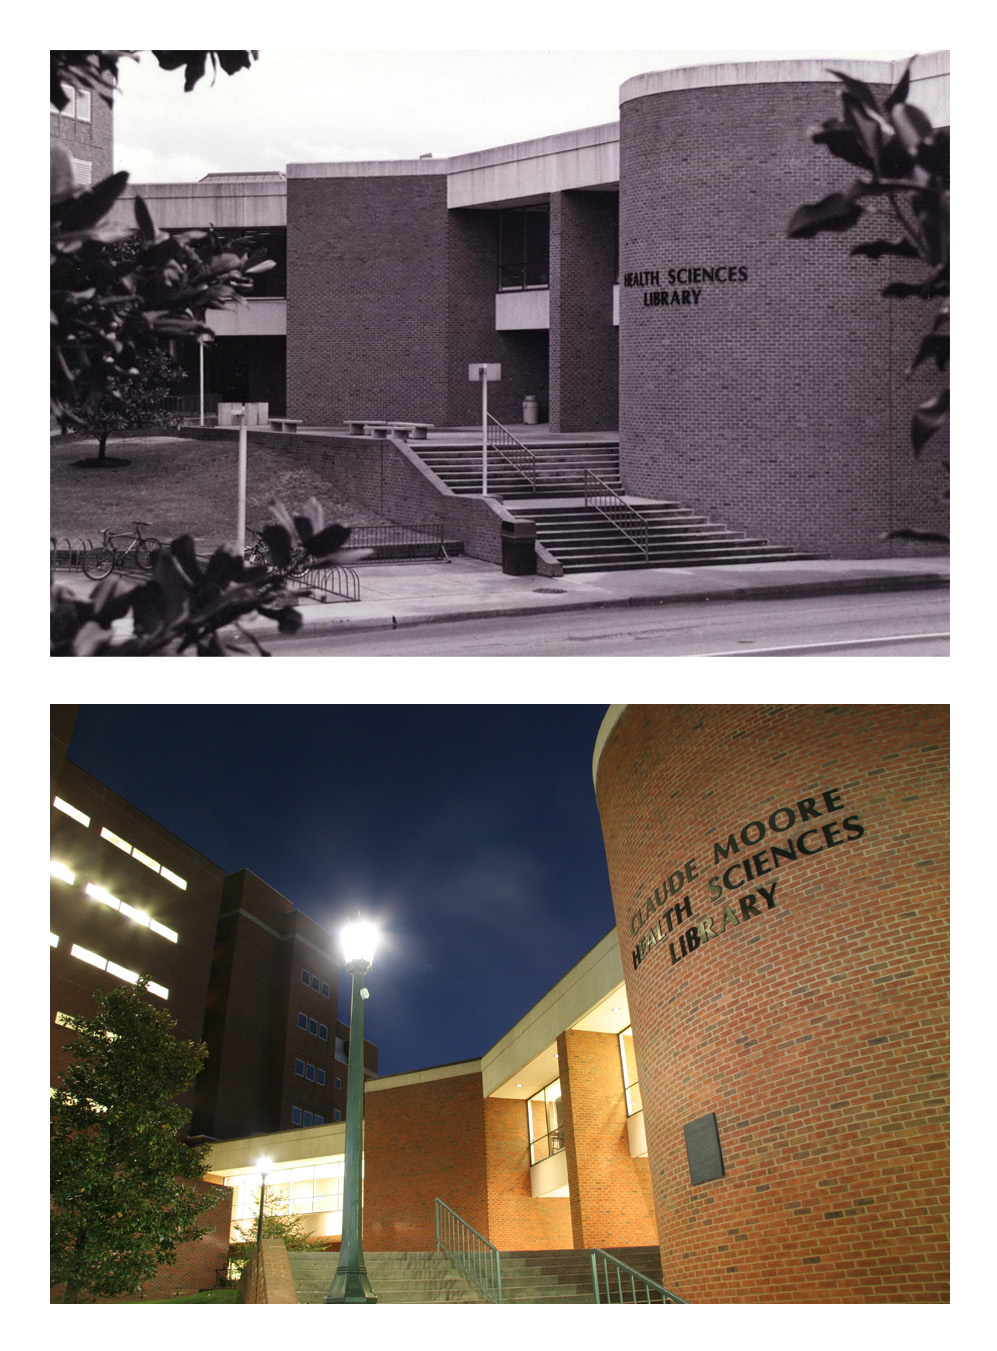 The Health Sciences Library in 1980 and 2006. Images courtesy of Historical Collections & Services, CMHSL, UVA.